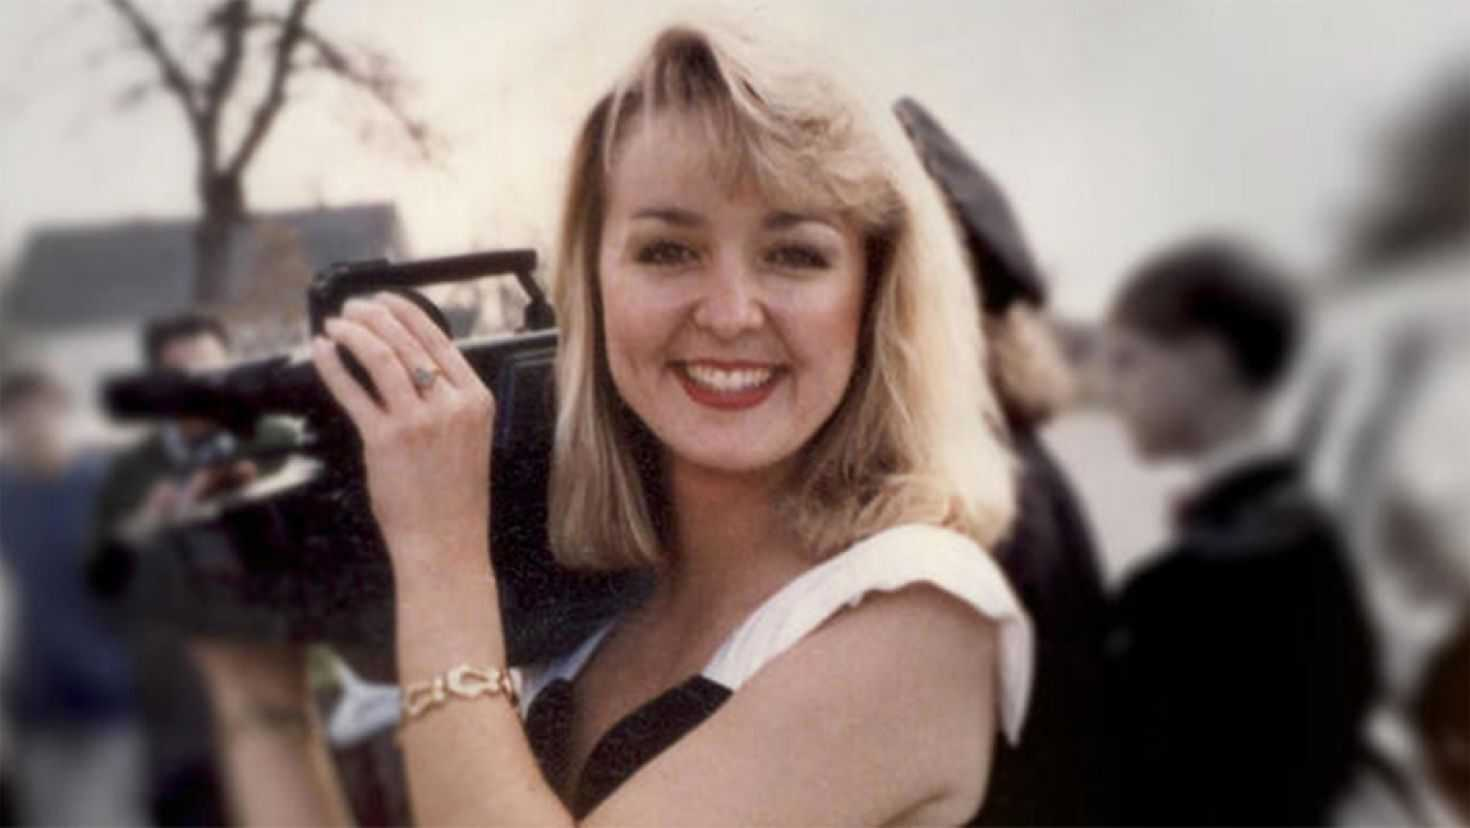 What happened to Jodi Huisentruit? Who killed her? Was she ever found? New evidence in 2020 documentary